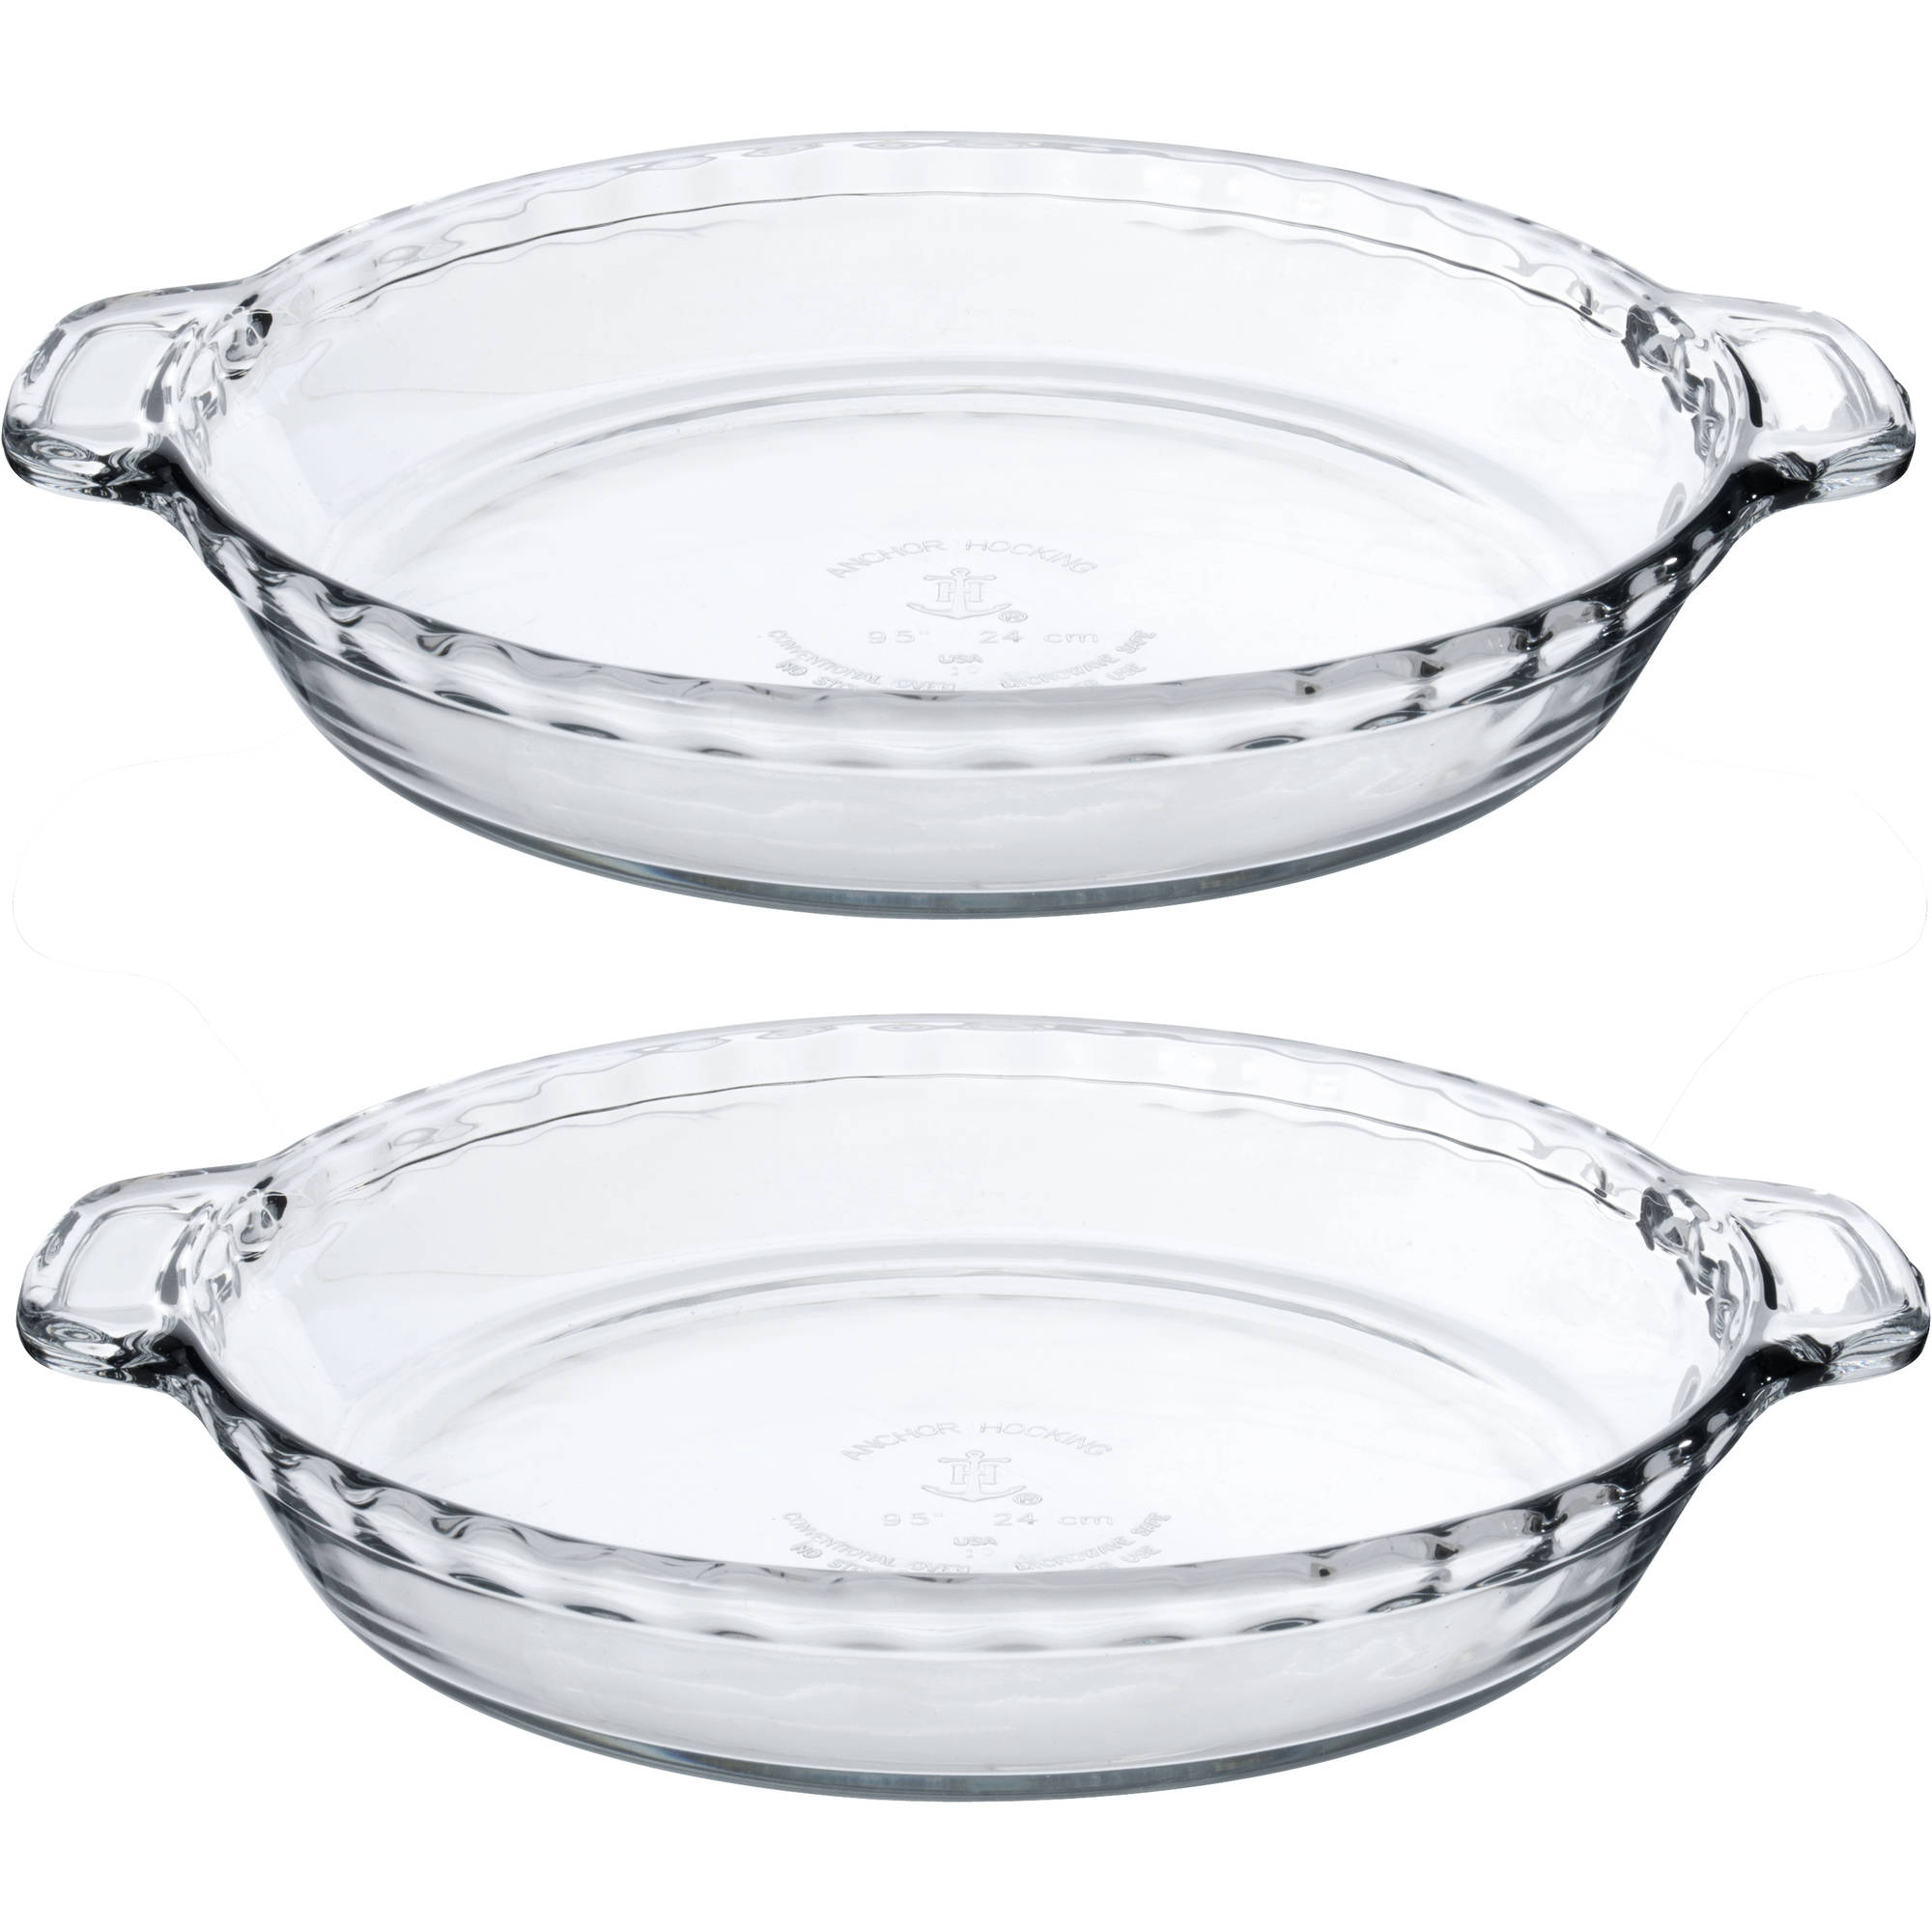 "Anchor Hocking 9.5"" Deep Pie Plate, 2-Pack"